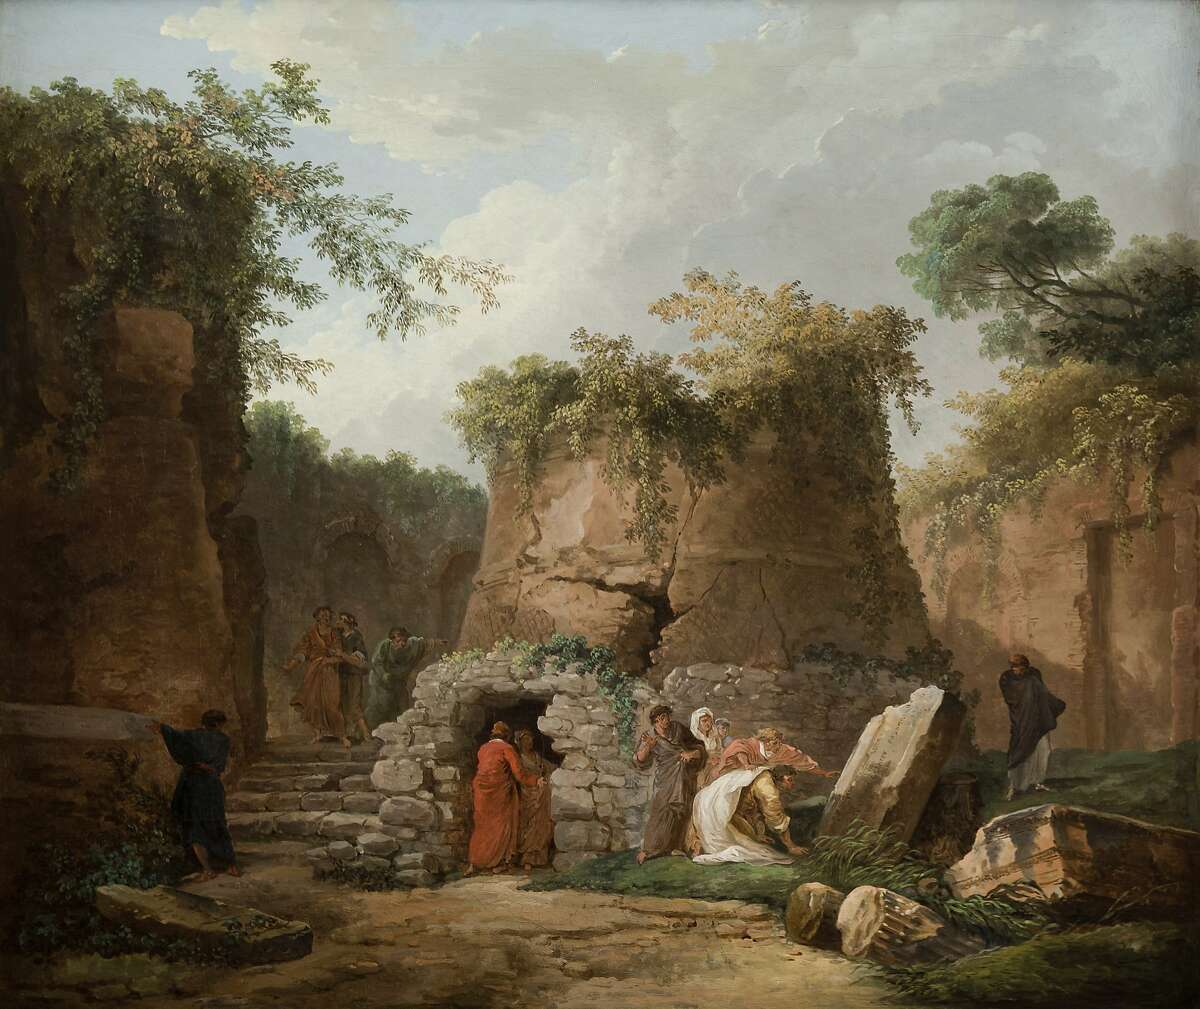 """This undated image provided by the La Salle University Art Museum in Philadelphia shows a 1784 oil-on-canvas work by French painter Hubert Robert titled """"The Tomb of Virgil at Posilipo, near Naples."""" The painting is one of 46 artworks that La Salle University in Philadelphia announced Tuesday, Jan. 2, 2018, it will sell through Christie's auction house to help fund the Roman Catholic university's five-year plan. A university spokeswoman says the sale, tentatively set to begin in March 2018, could bring between $4 million and $7 million, and possibly much more. (Jack Ramsdale/La Salle University Art Museum via AP)"""